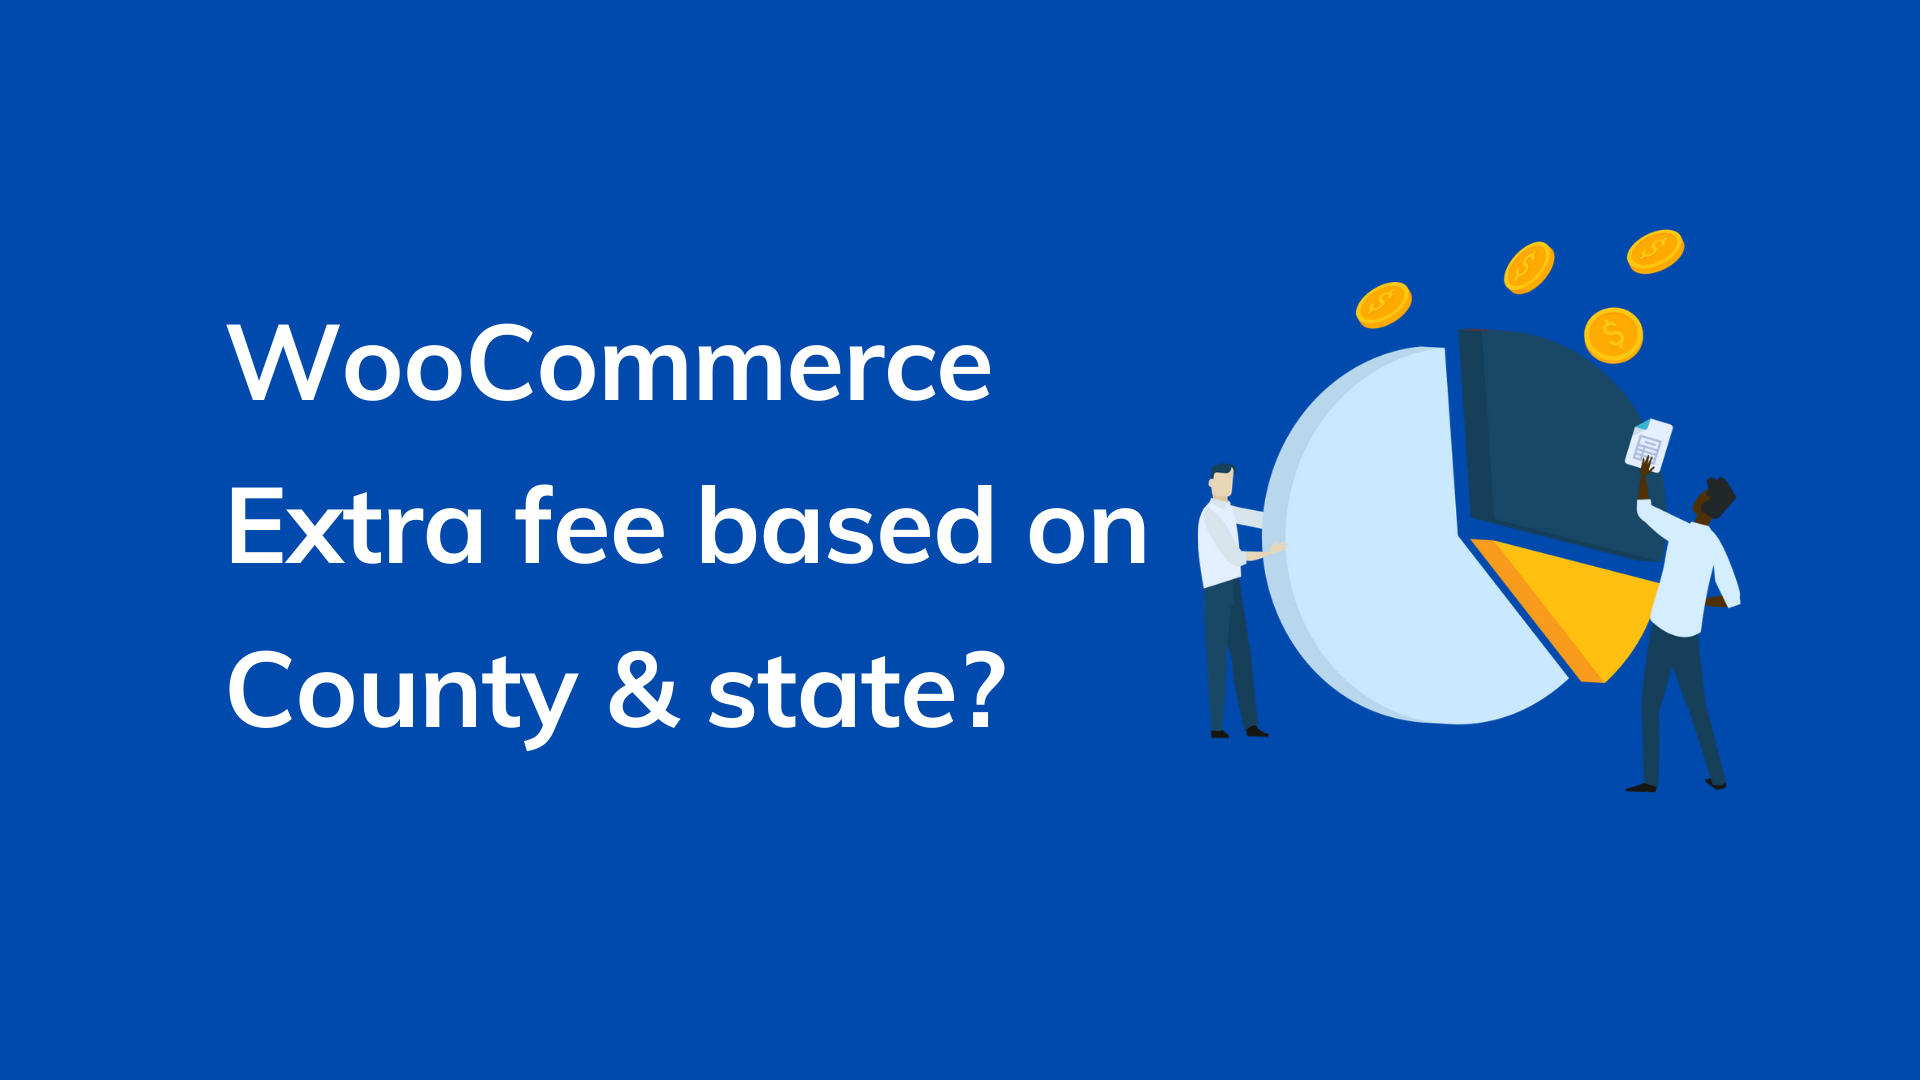 How to charge WooCommerce extra fee based on county and state?